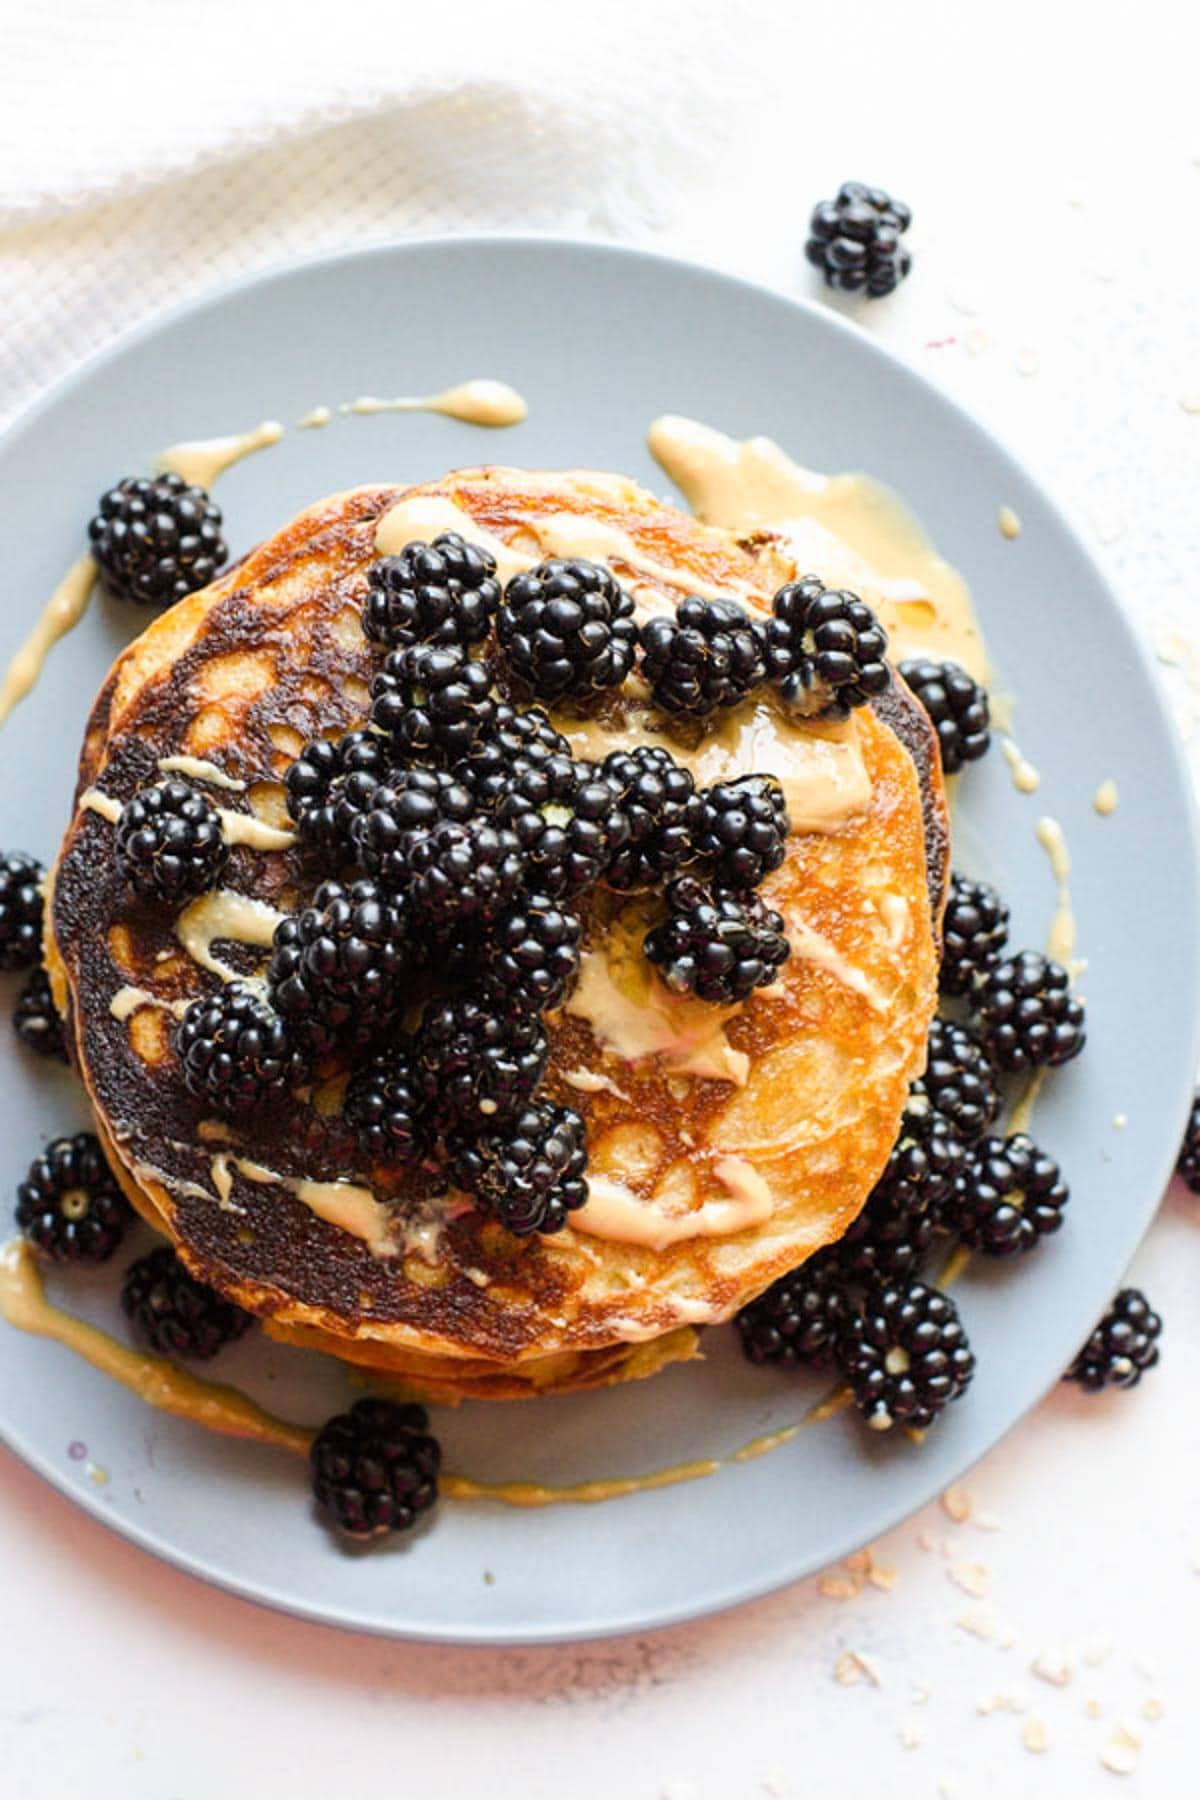 Peanut Butter Protein Pancakes on plate topped with blackberries